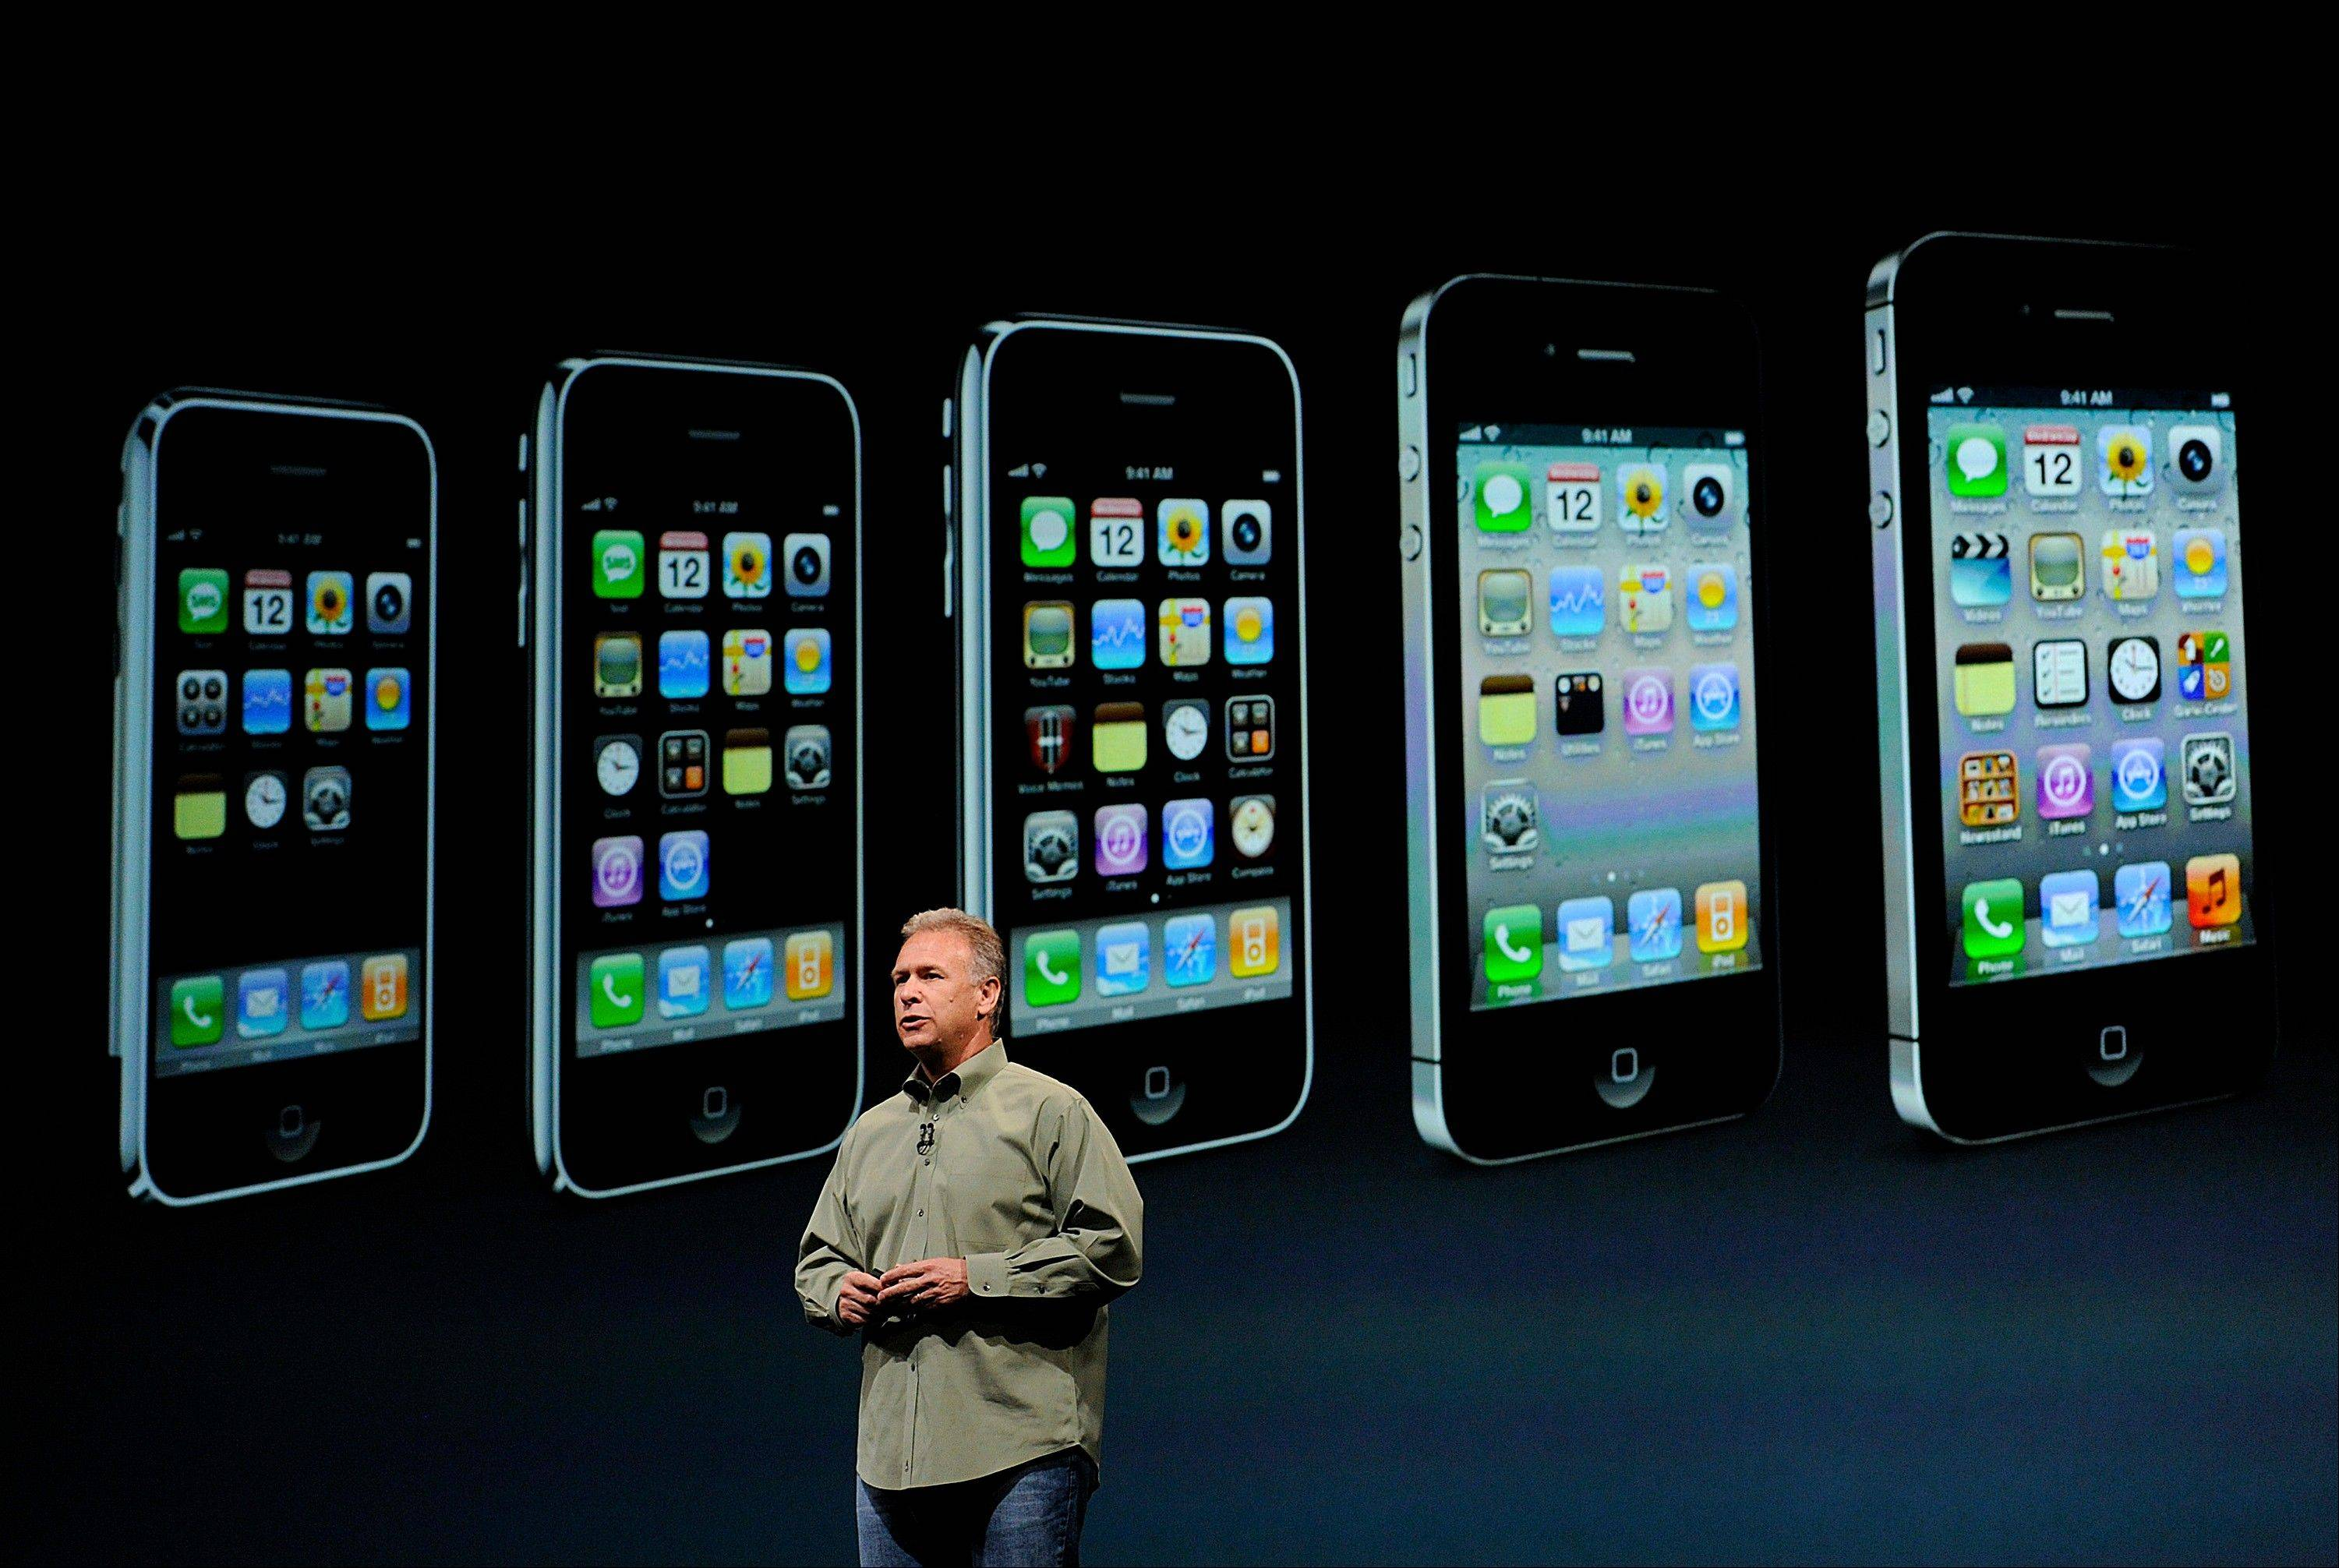 "Philip ""Phil"" Schiller, senior vice president of worldwide marketing at Apple Inc., speaks during an event in San Francisco. Apple's basic new iPhone costs the company just more than $200 to make, according to a preliminary component report from analysis firm IHS iSuppli."